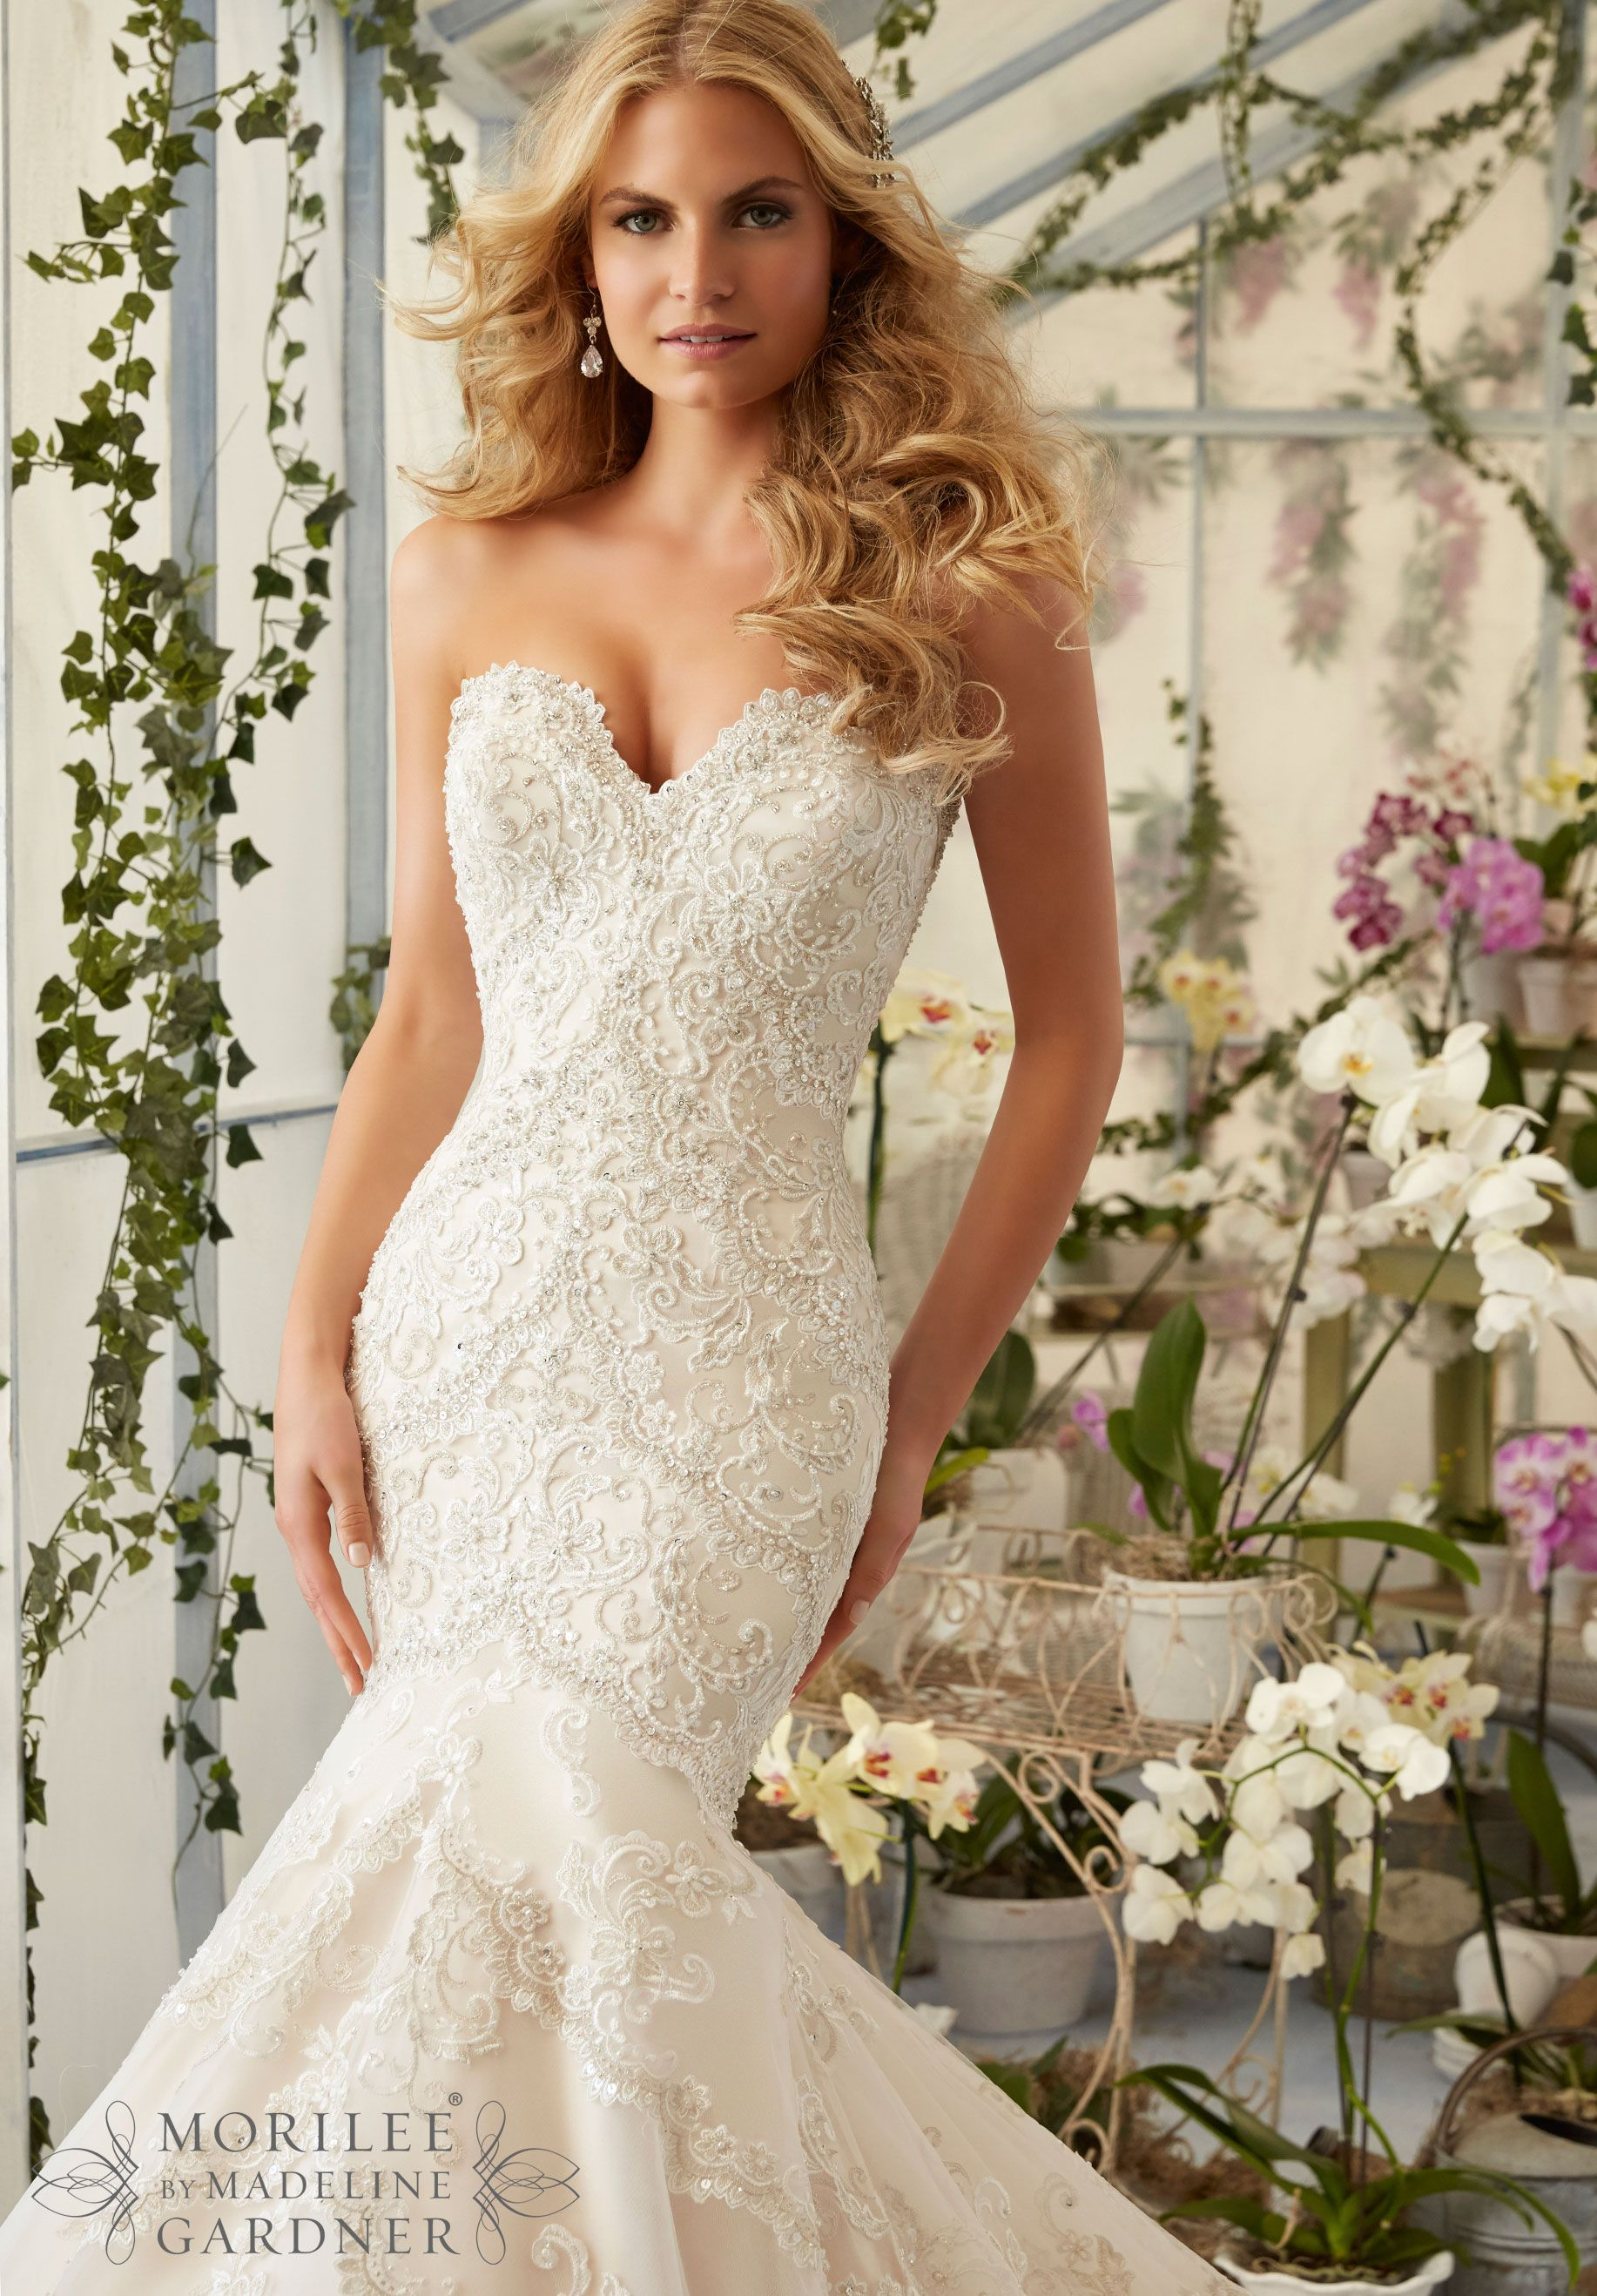 Wedding Dress 2801 Embroidered Appliques And Edging With Crystal Beading On Tulle